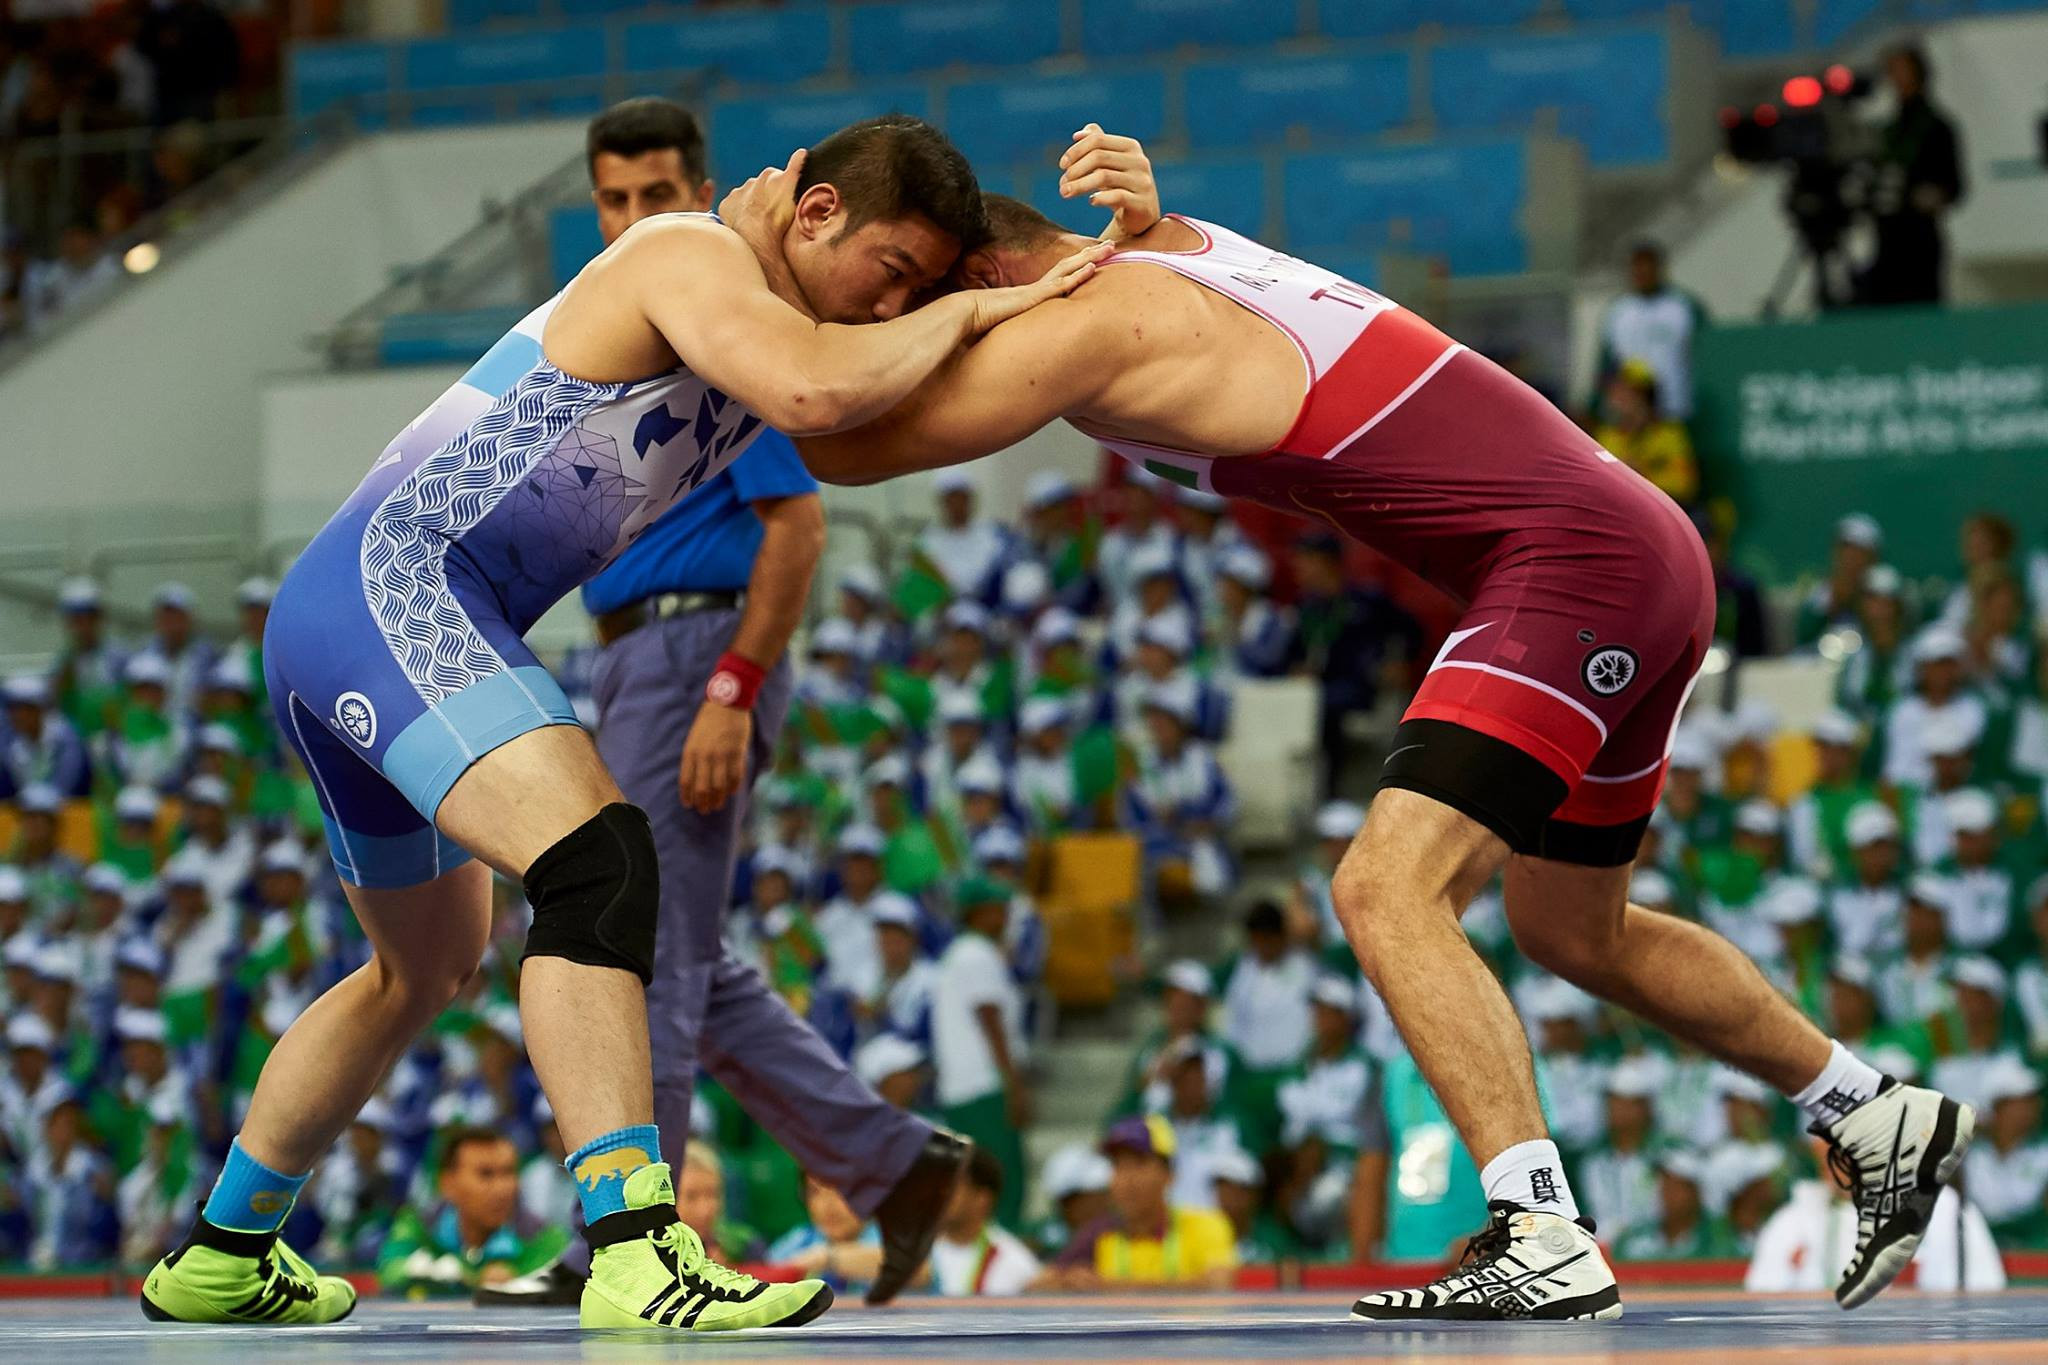 A further eight gold medals were won in wrestling ©Ashgabat 2017/Facebook